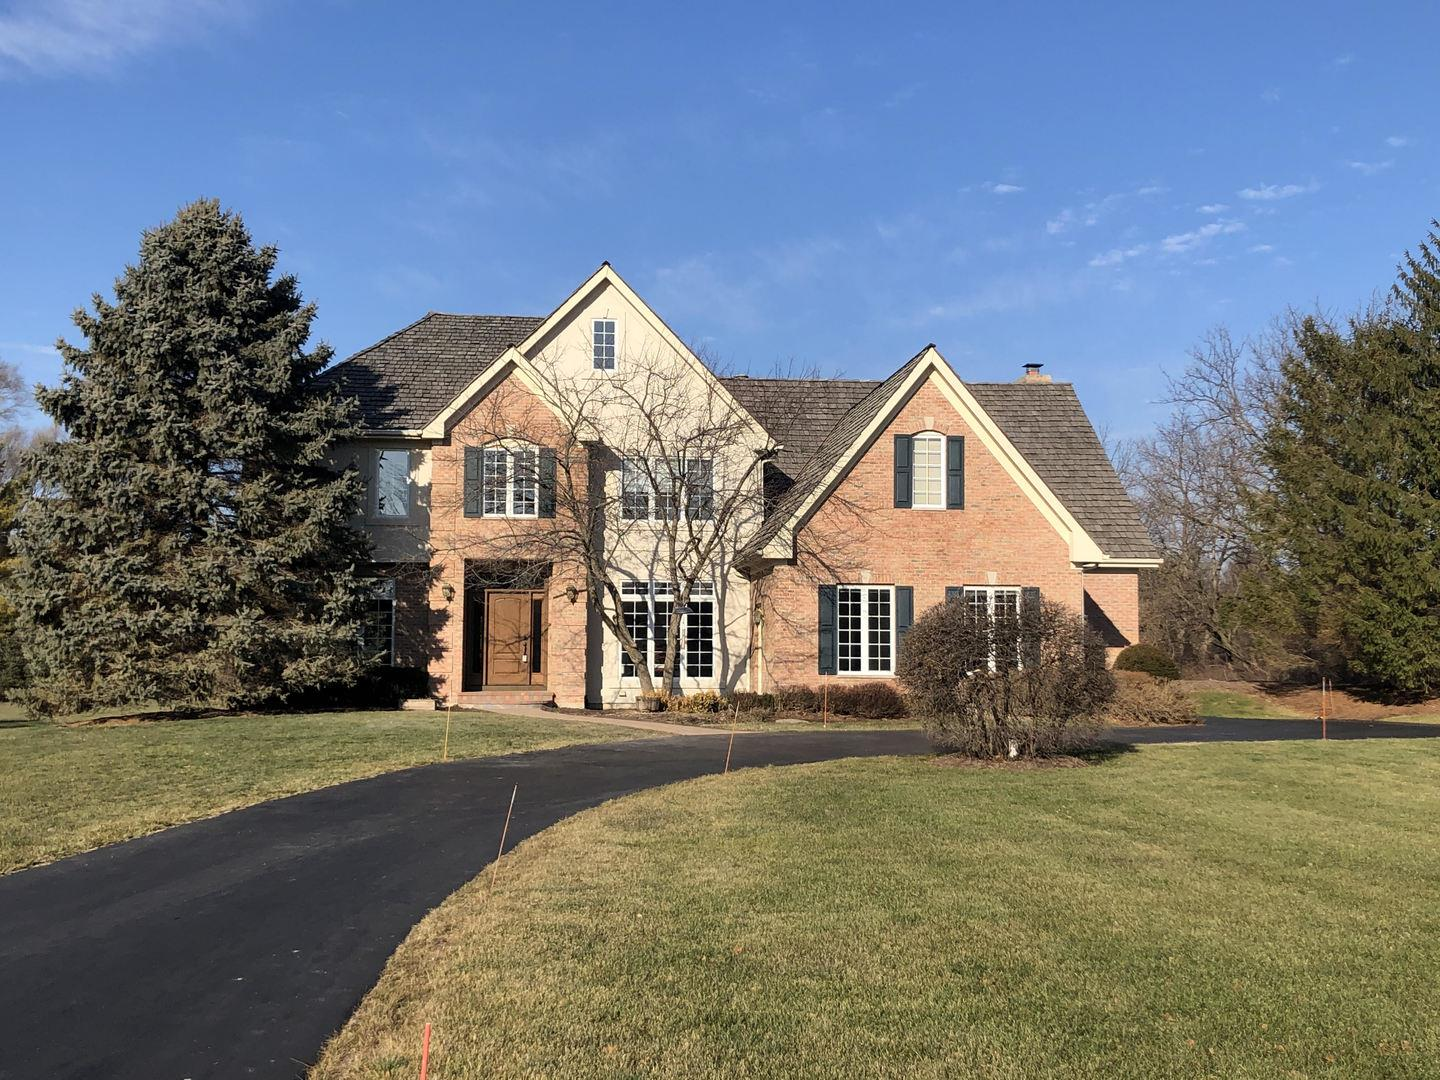 22257 NW Brookside Way, Lake Barrington, IL 60010 - #: 11003054